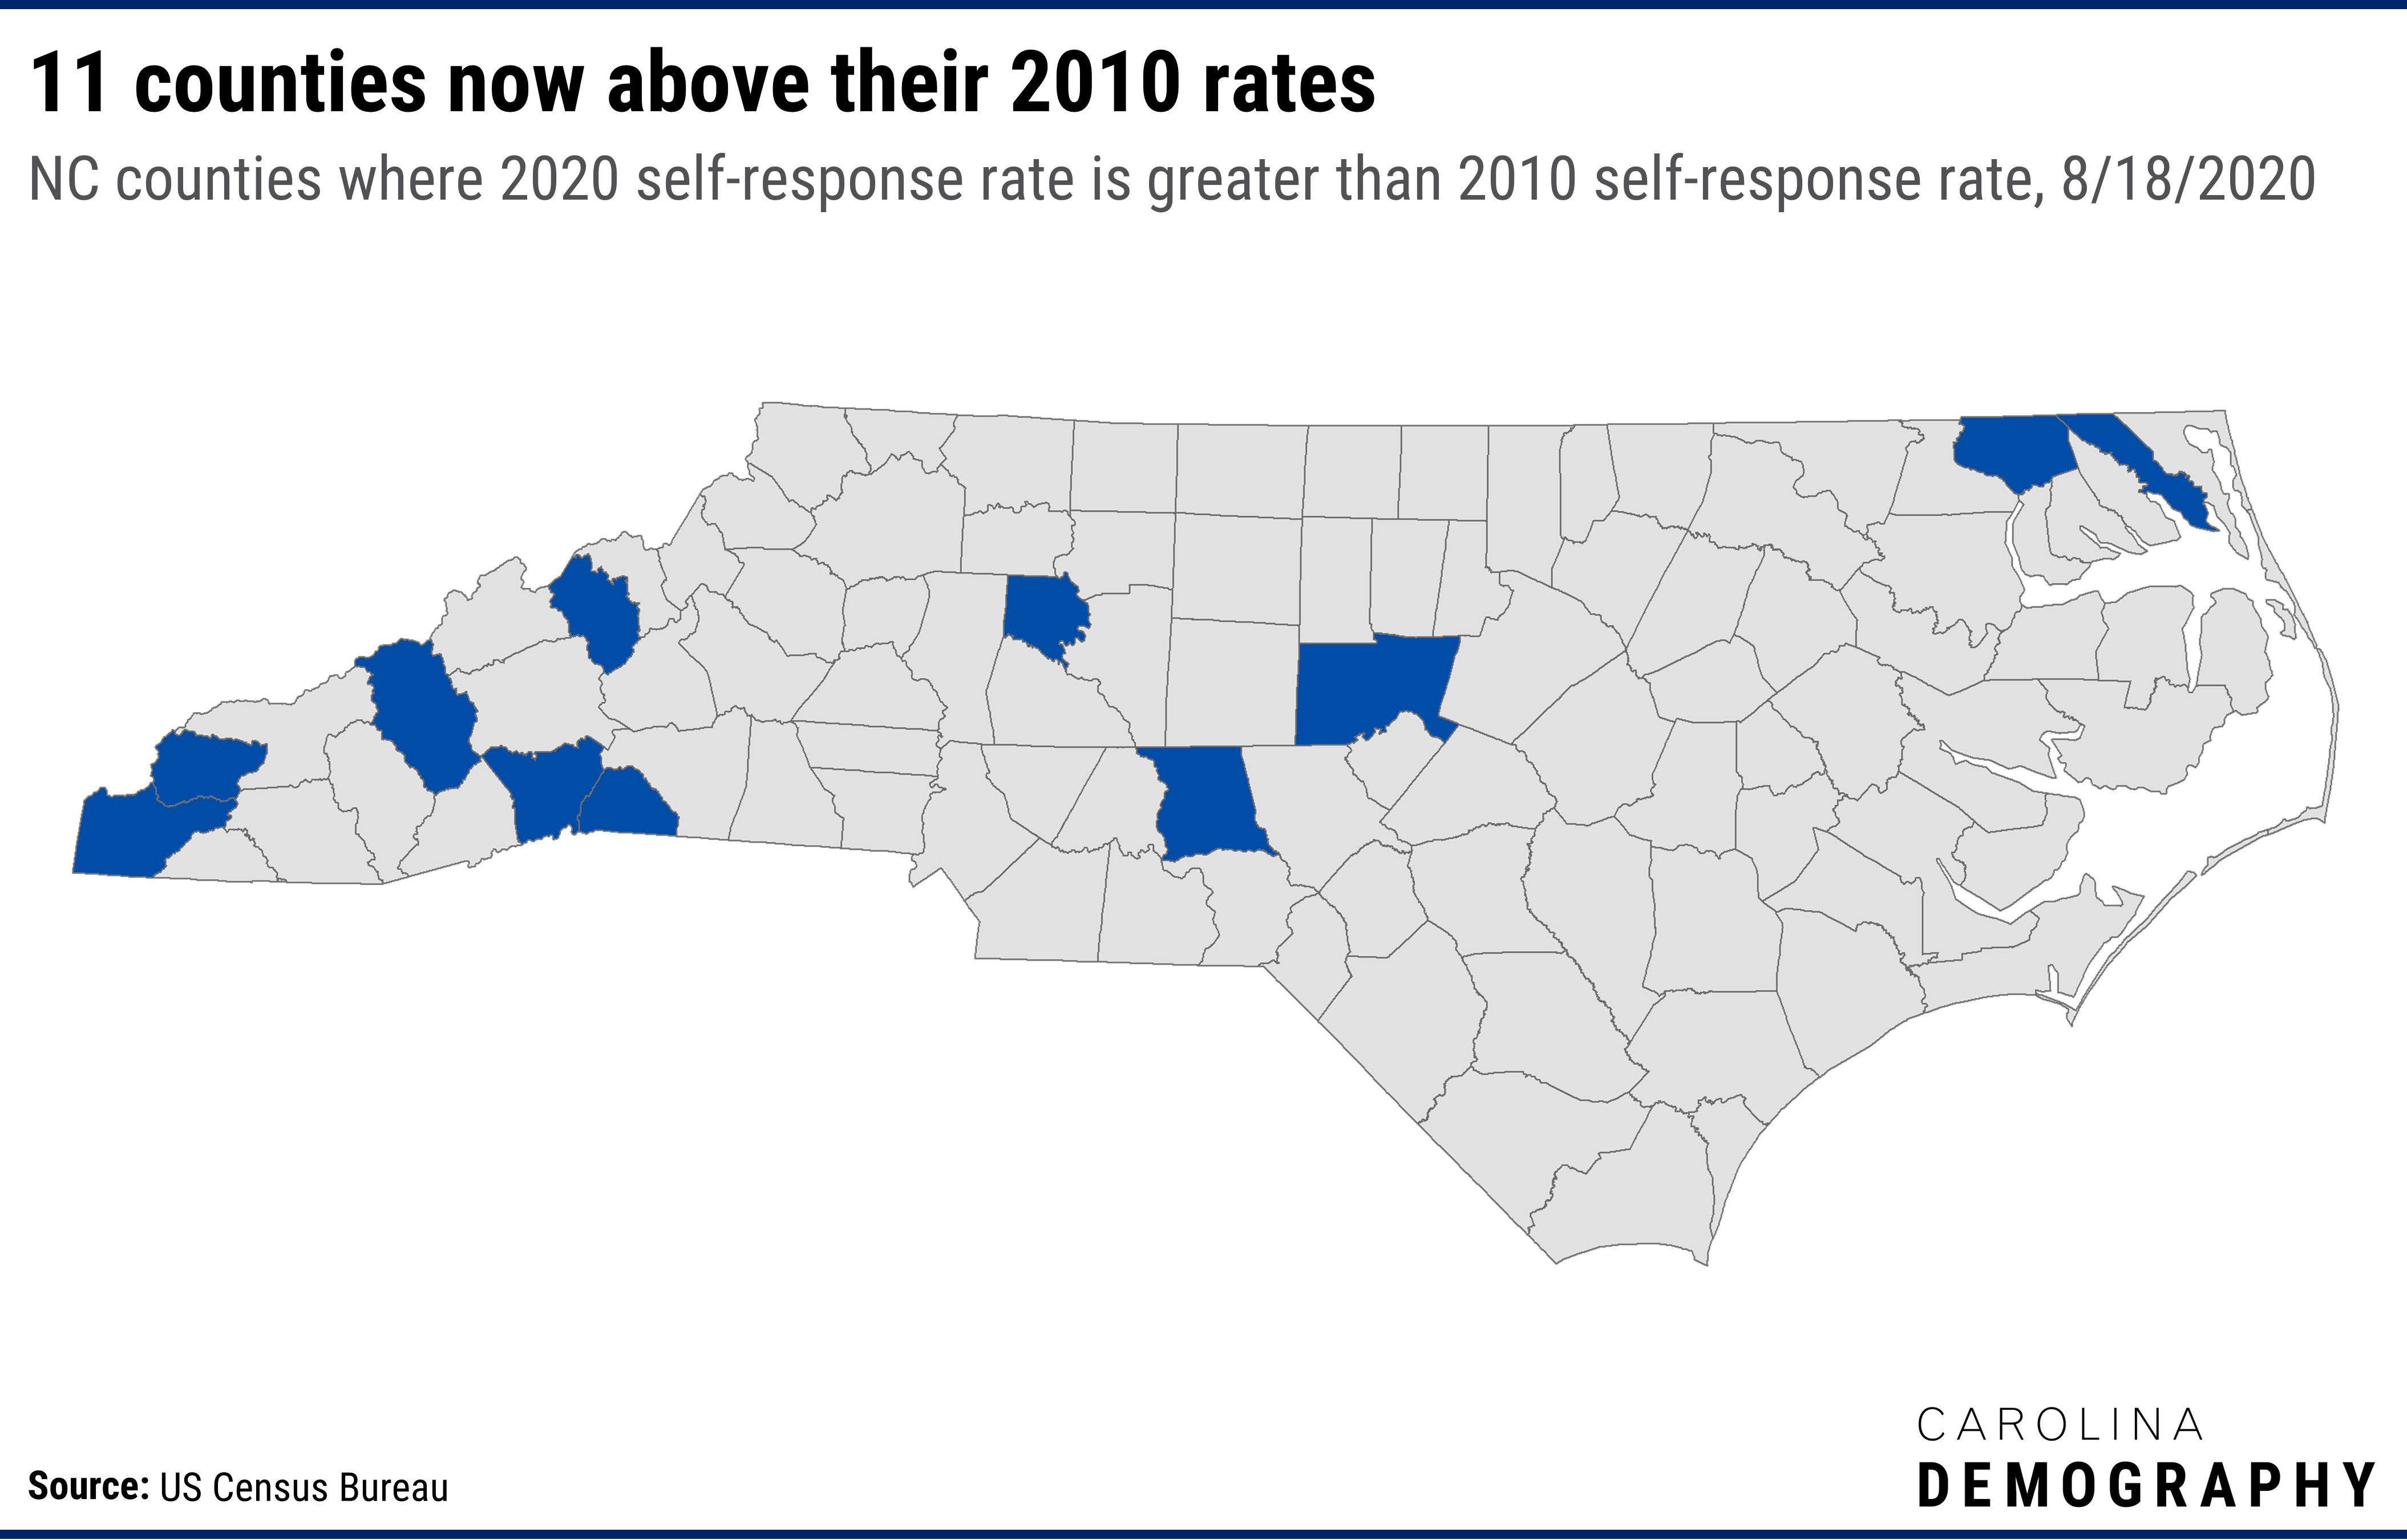 Eleven North Carolina counties already have 2020 self-response rates above their final self-response rate from 2010. These include: Six western counties: Cherokee, Graham, Haywood, Henderson, Polk, and Yancey; Three Piedmont counties: Chatham, Davie, and Montgomery; and Two Northeastern counties: Camden and Gates.